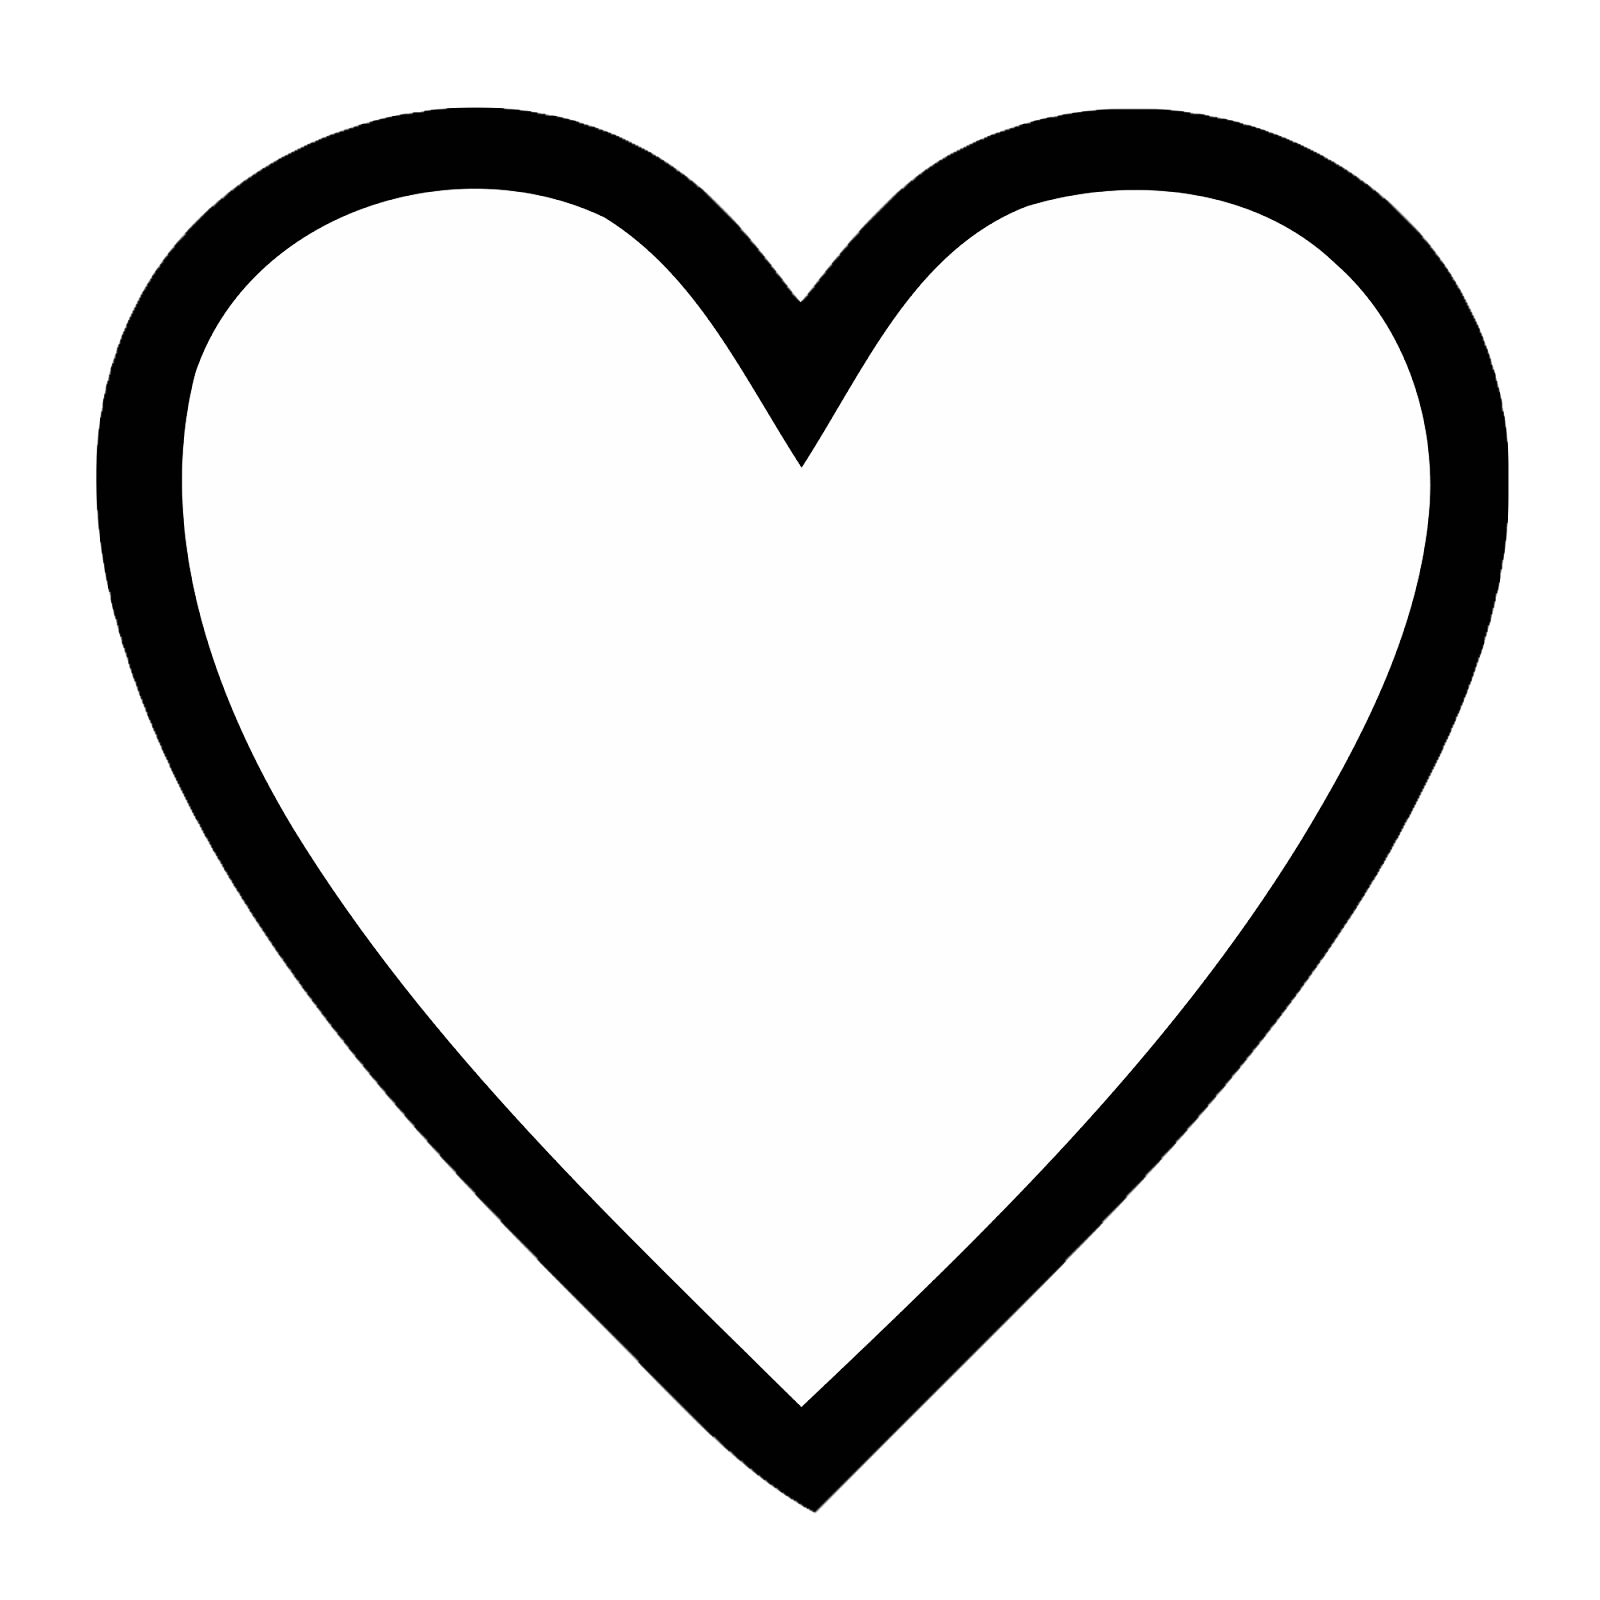 Drawing wallpapers heart. Free hearts download clip